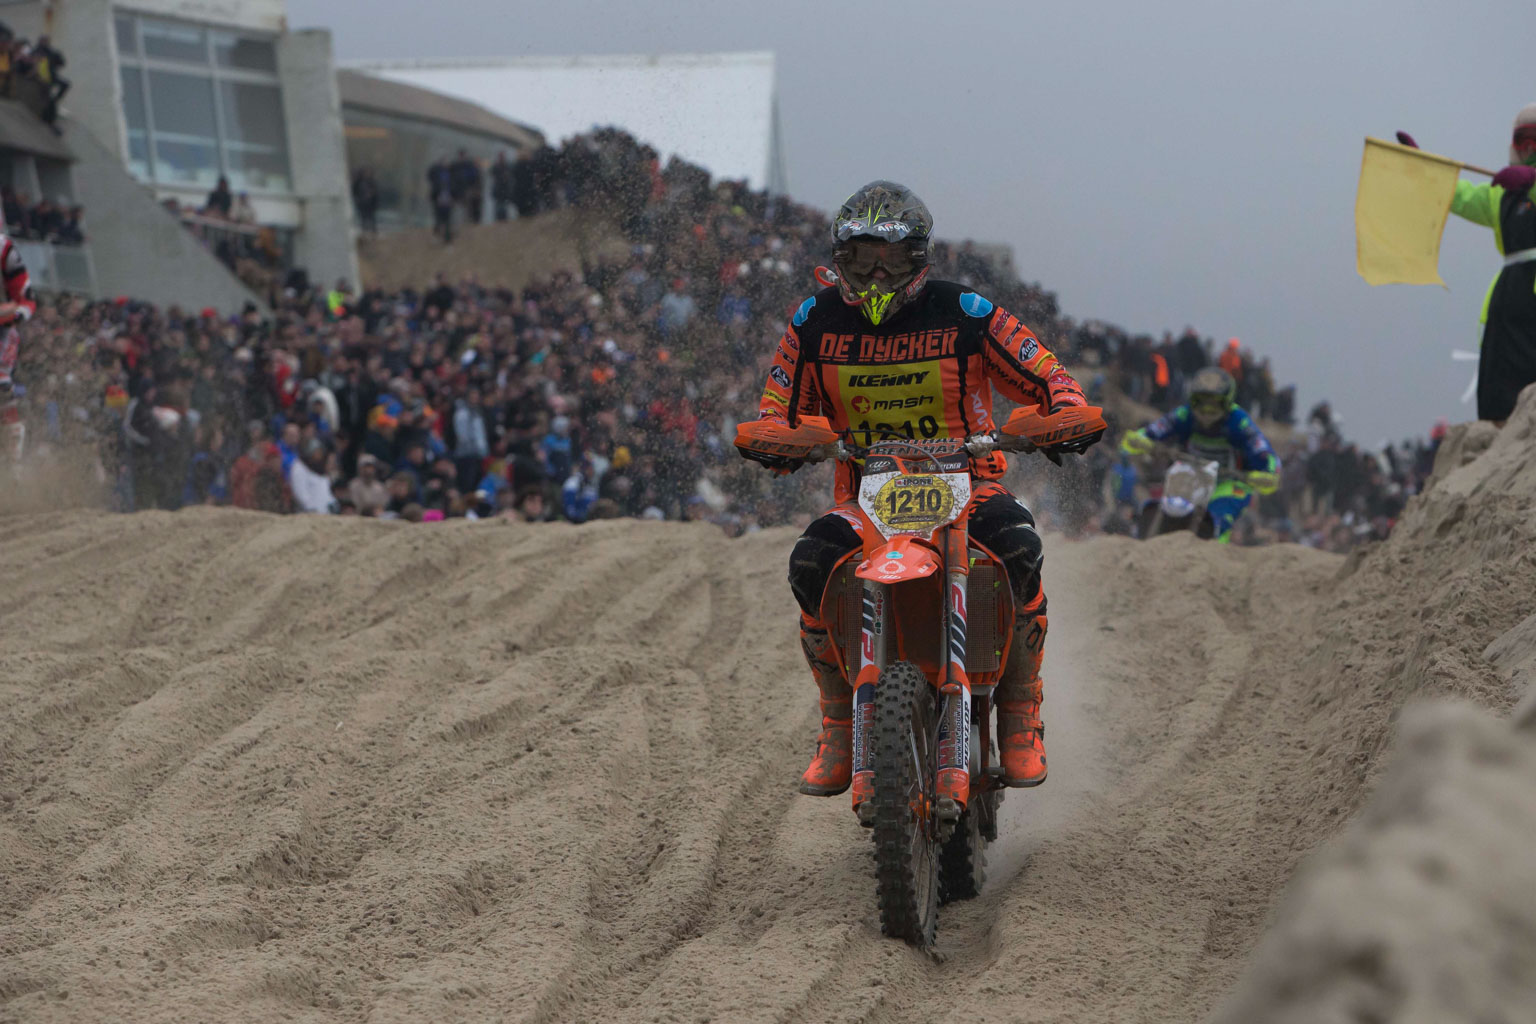 MXGP winner and ex British champ Ken De Dycker on his mighty KTM. He was fifth